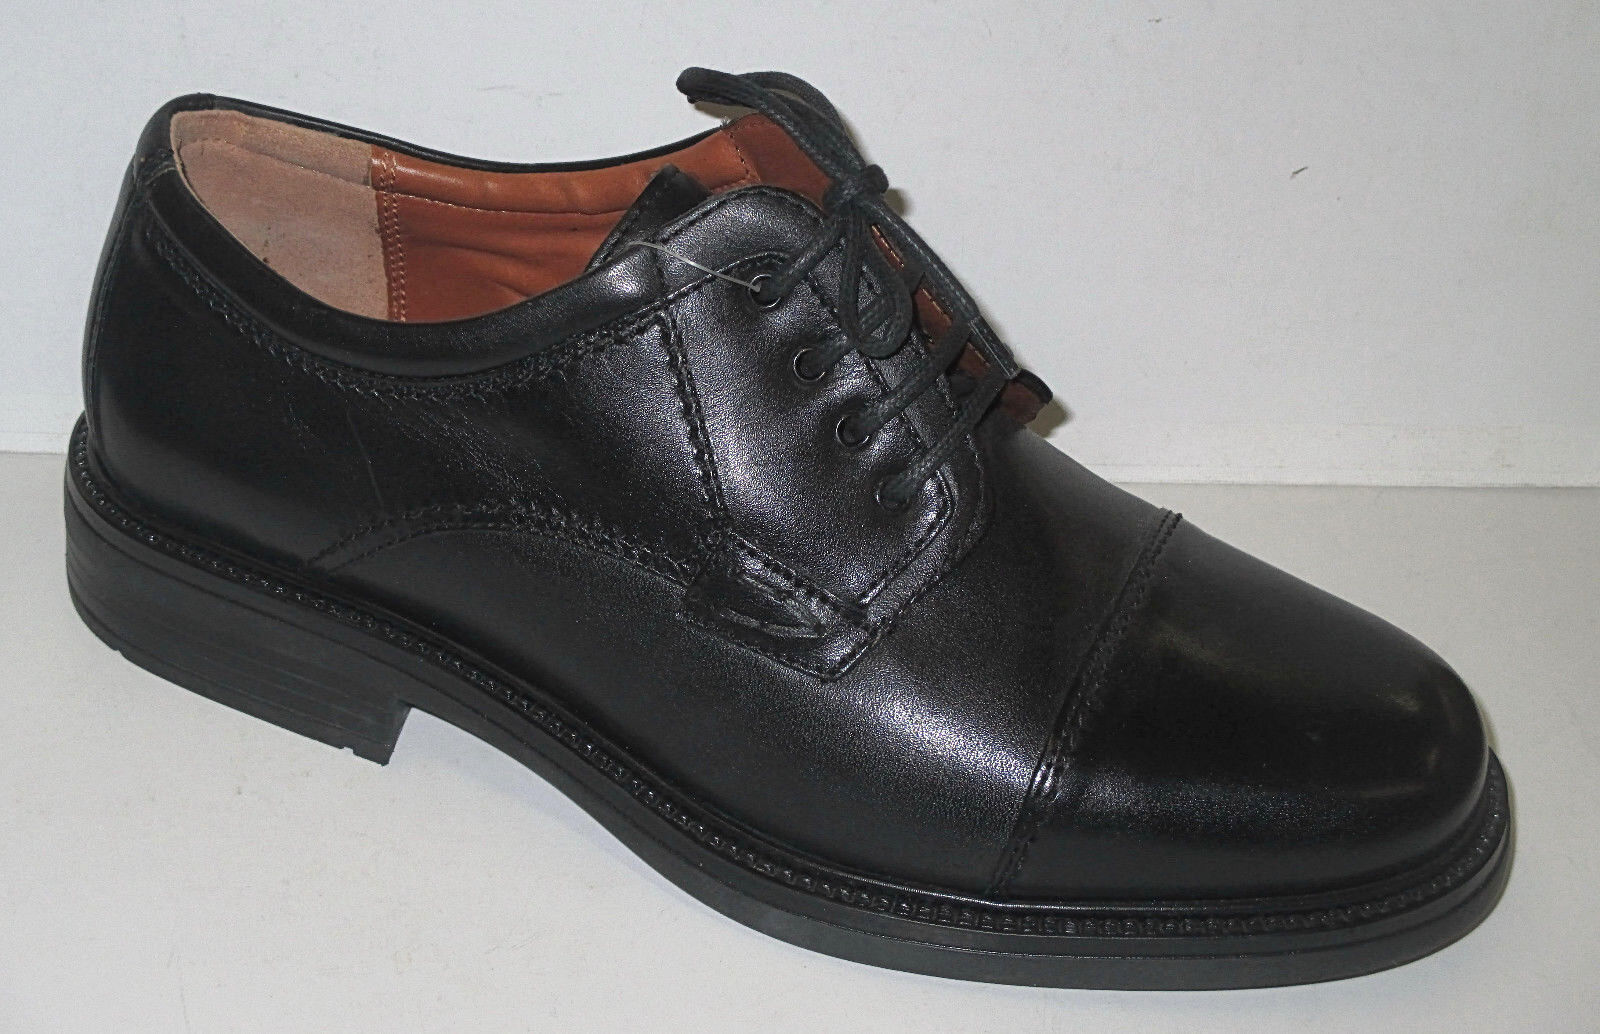 FILANTO Chaussures Chaussures Hommes Chaussure Lacée, Cuir, Taille 40-46 +++ NEUF +++